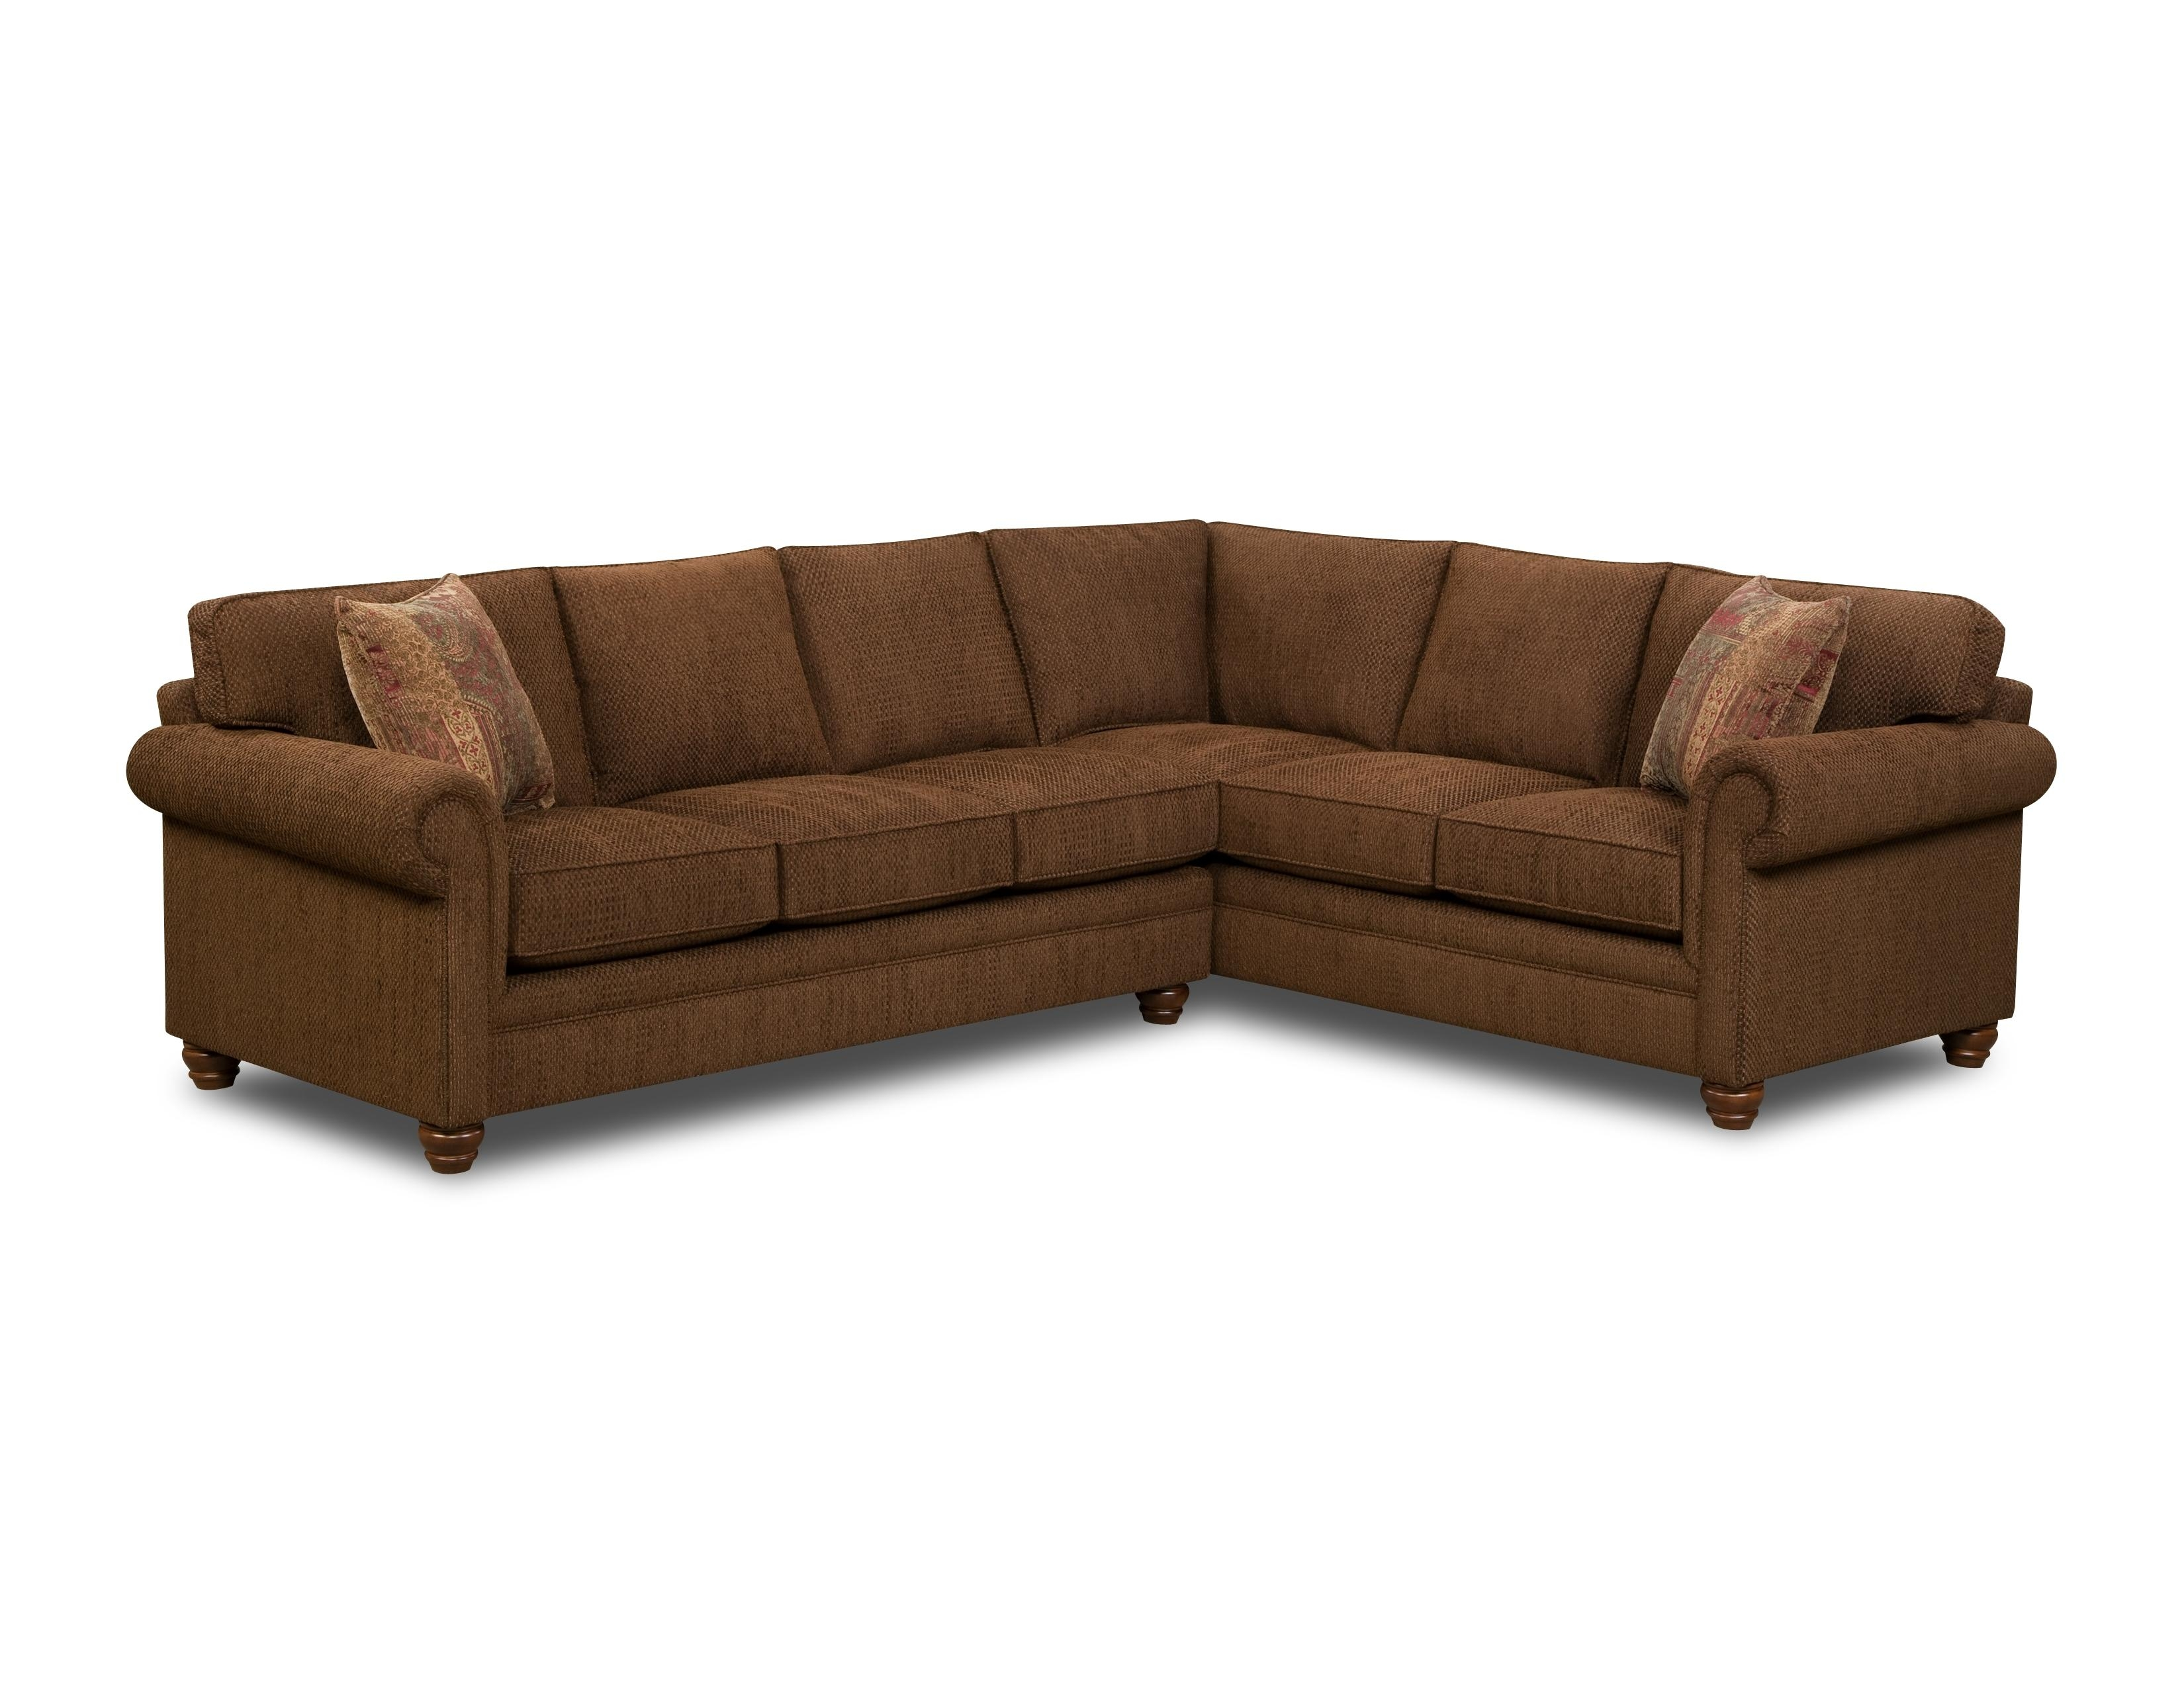 Featured Image of Bauhaus Sectional Sofas